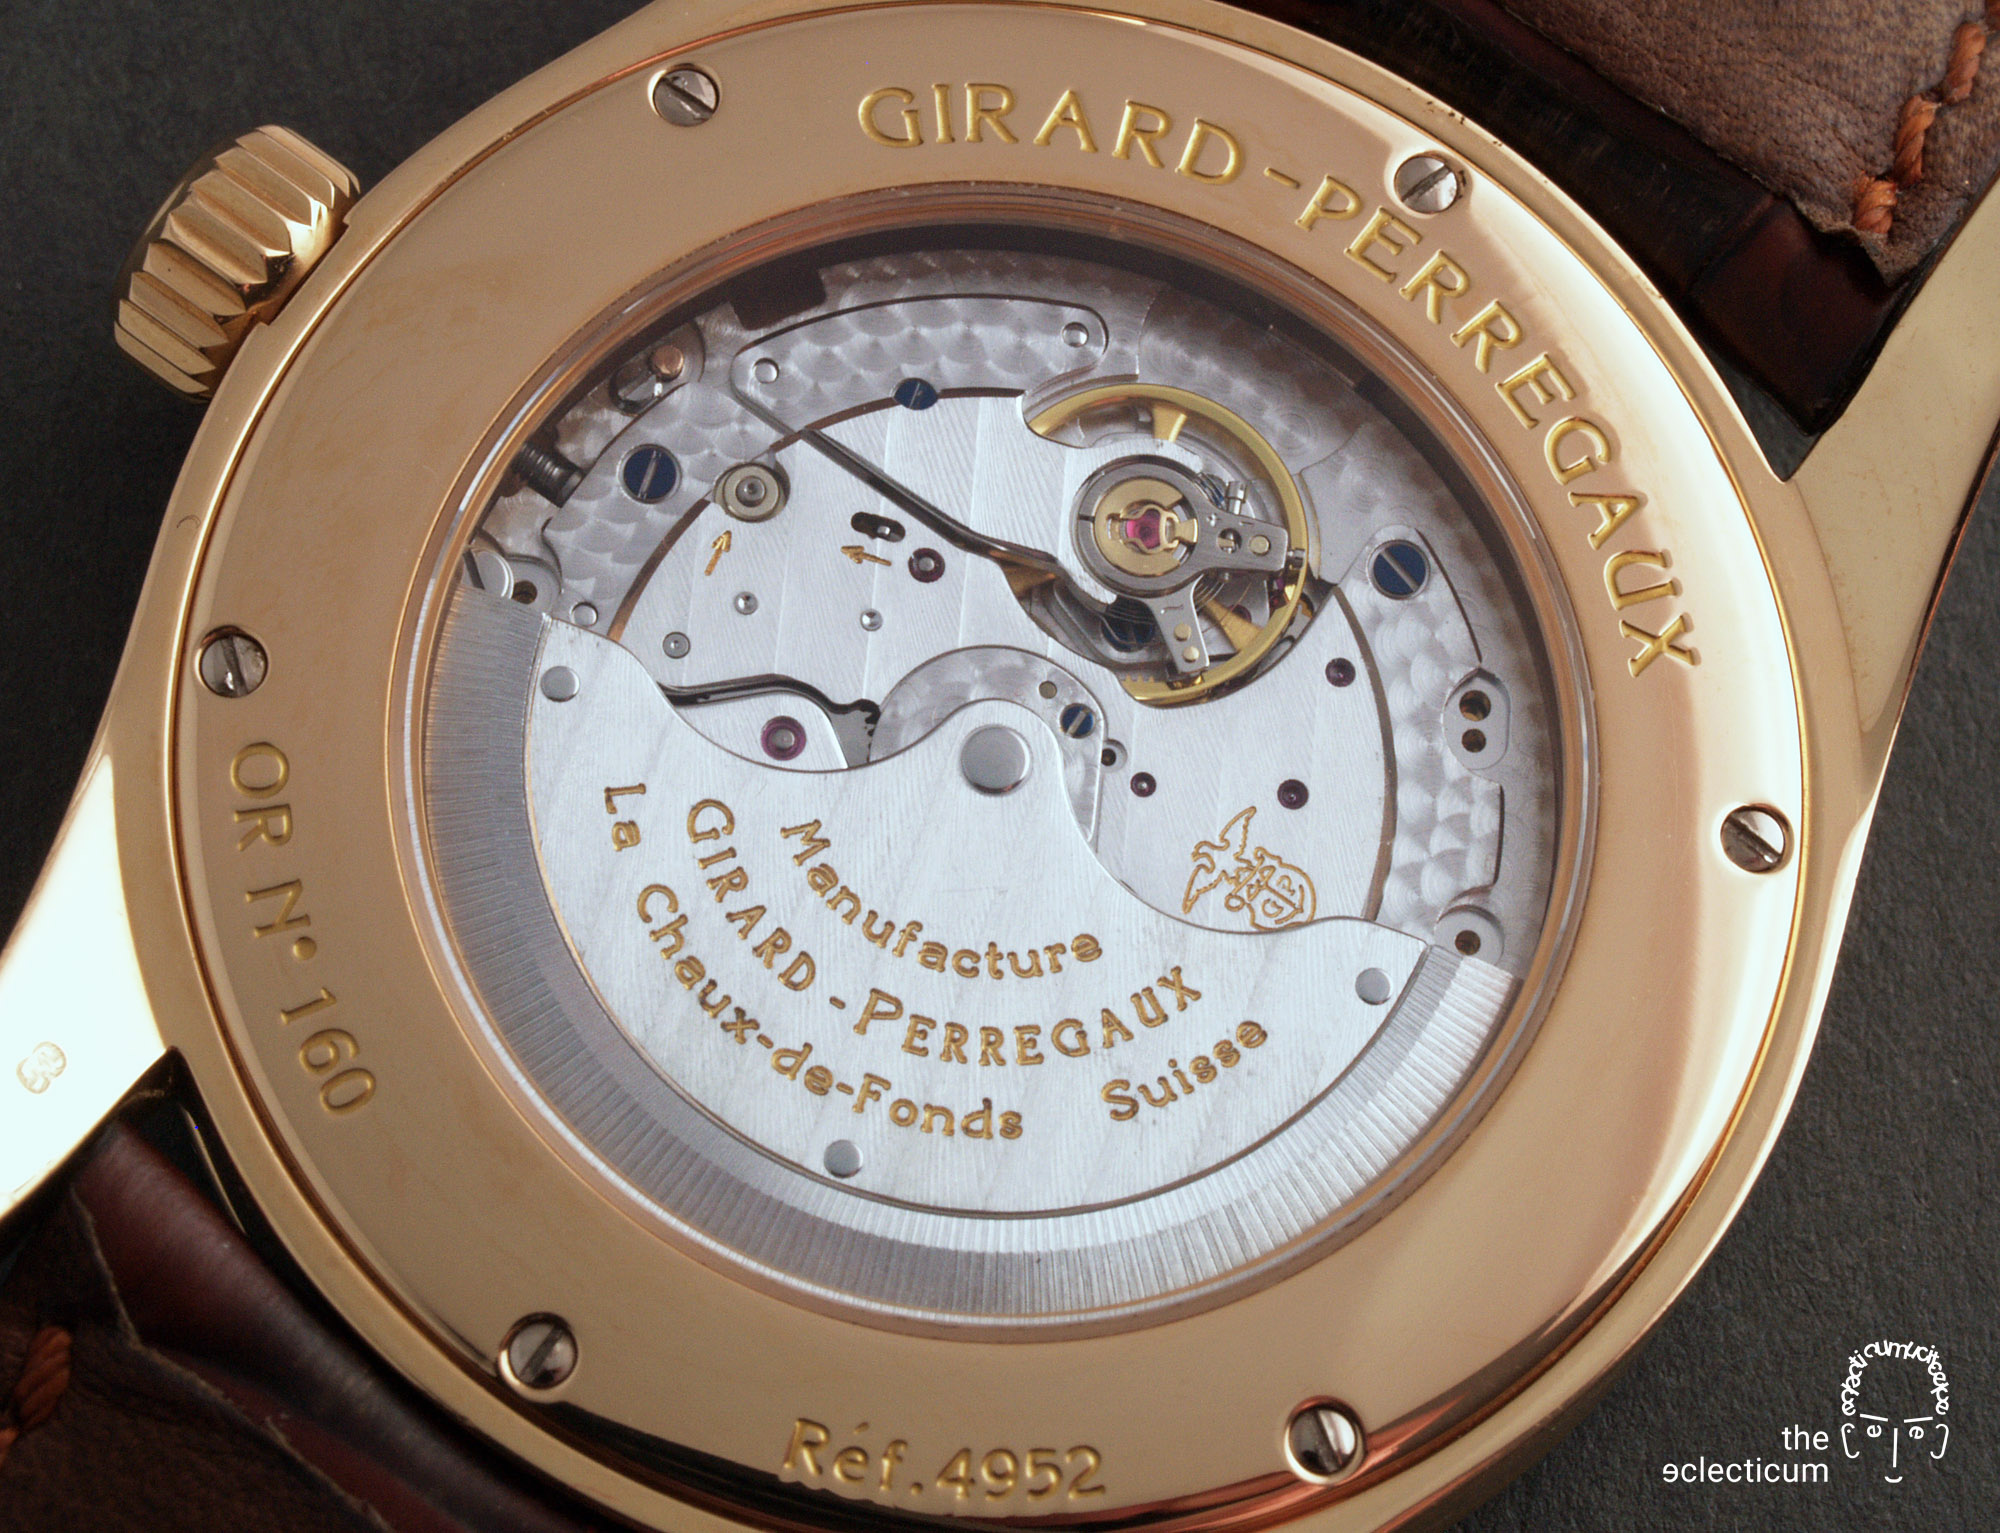 Girard-Perregaux Classique Elegance Ref. 49520 manufacture rose gold in-house caseback GP3300 movement